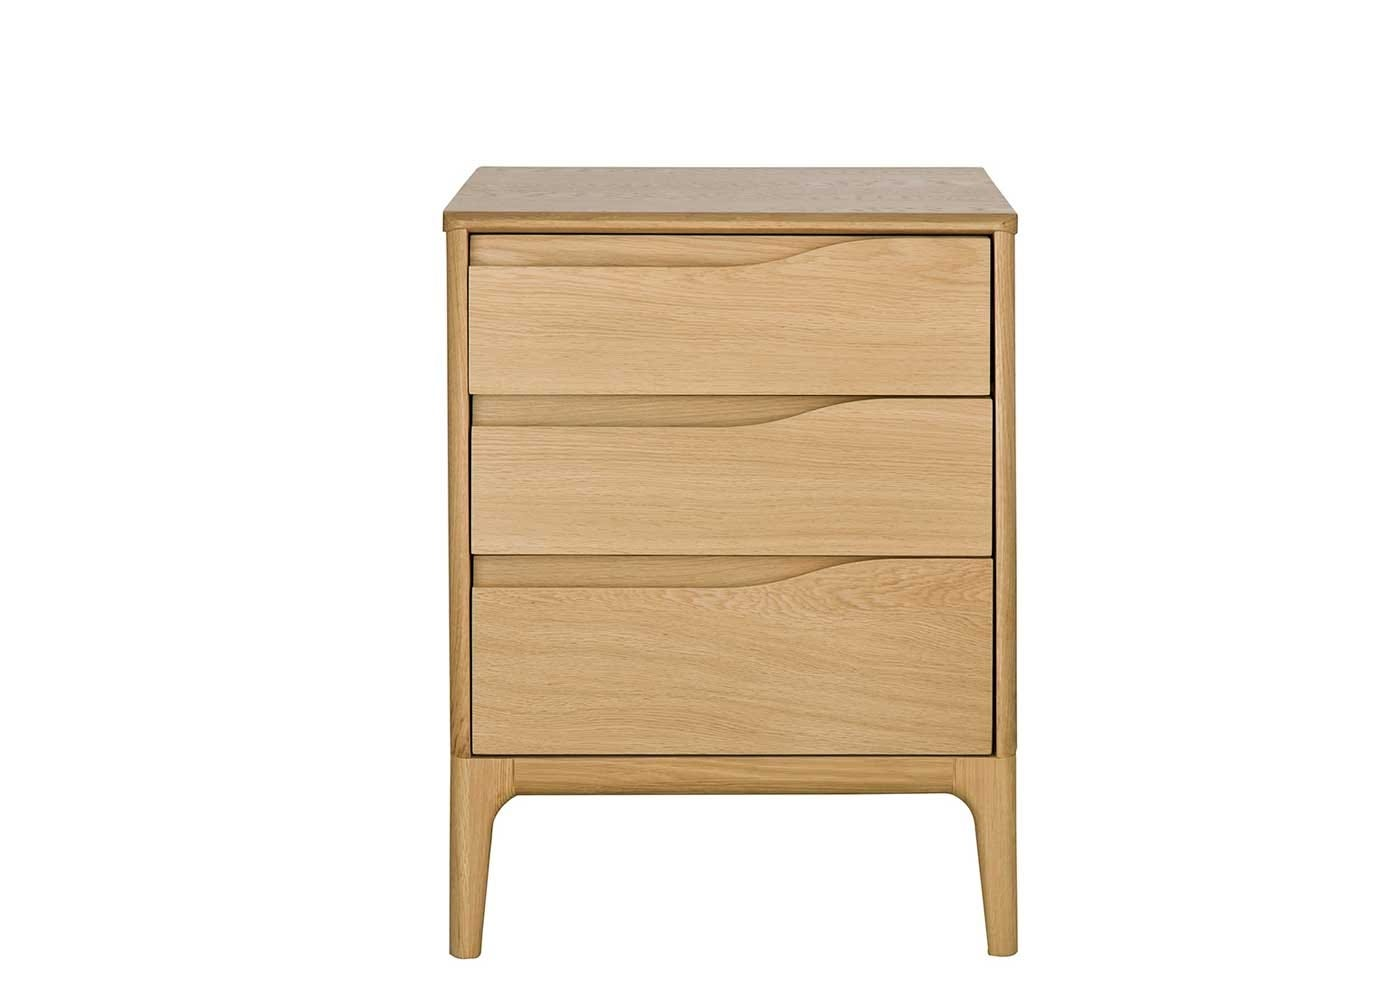 Rimini 3 Drawer Cabinet - Front View